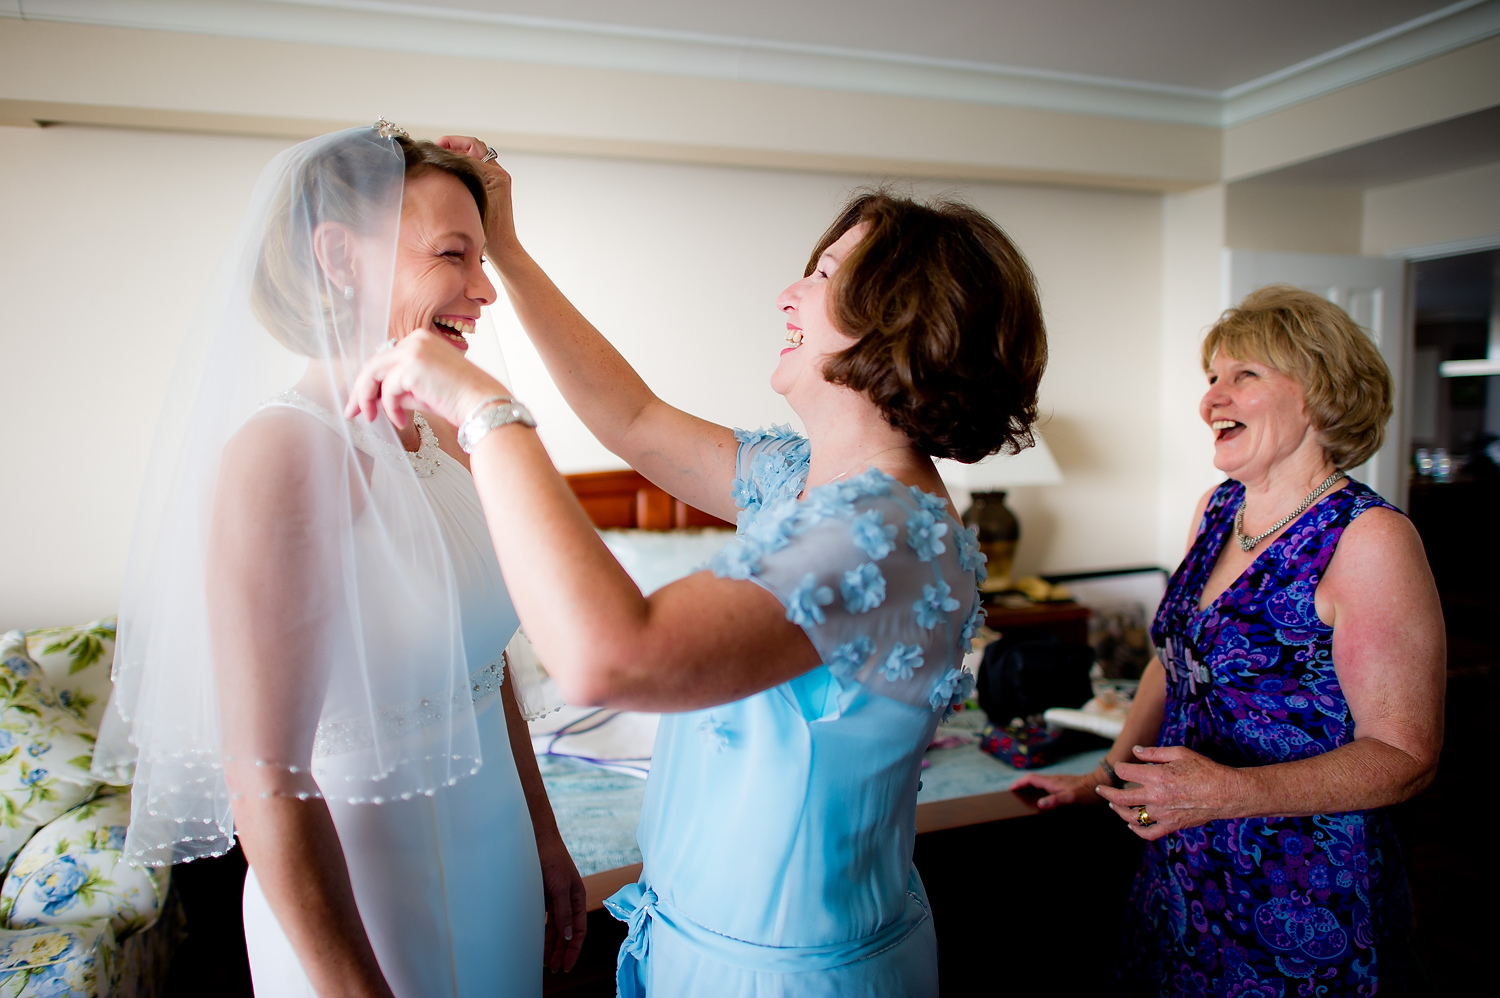 Photo of the Day: Bride Getting Ready